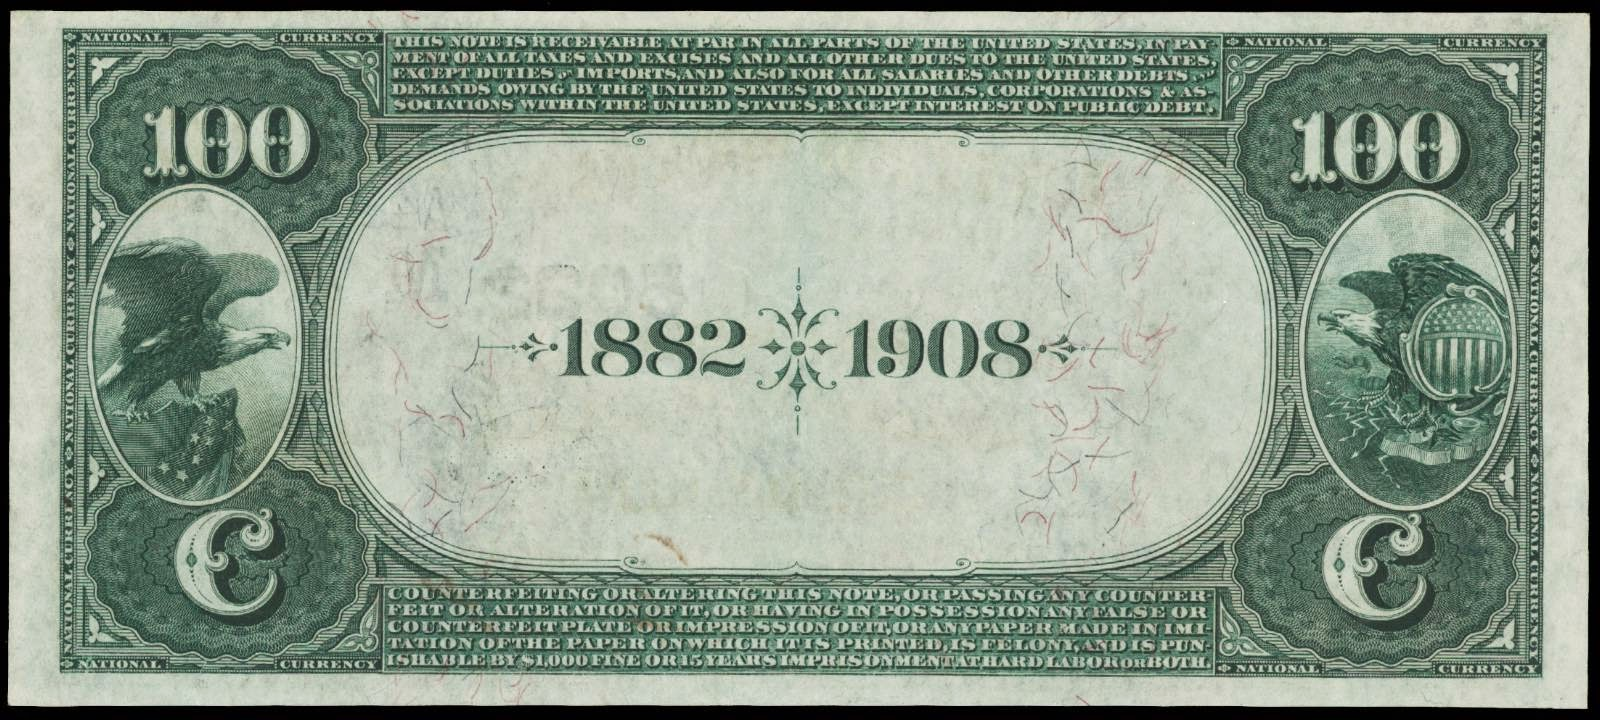 1882 100 Dollar Bill Date Back National Currency banknotes